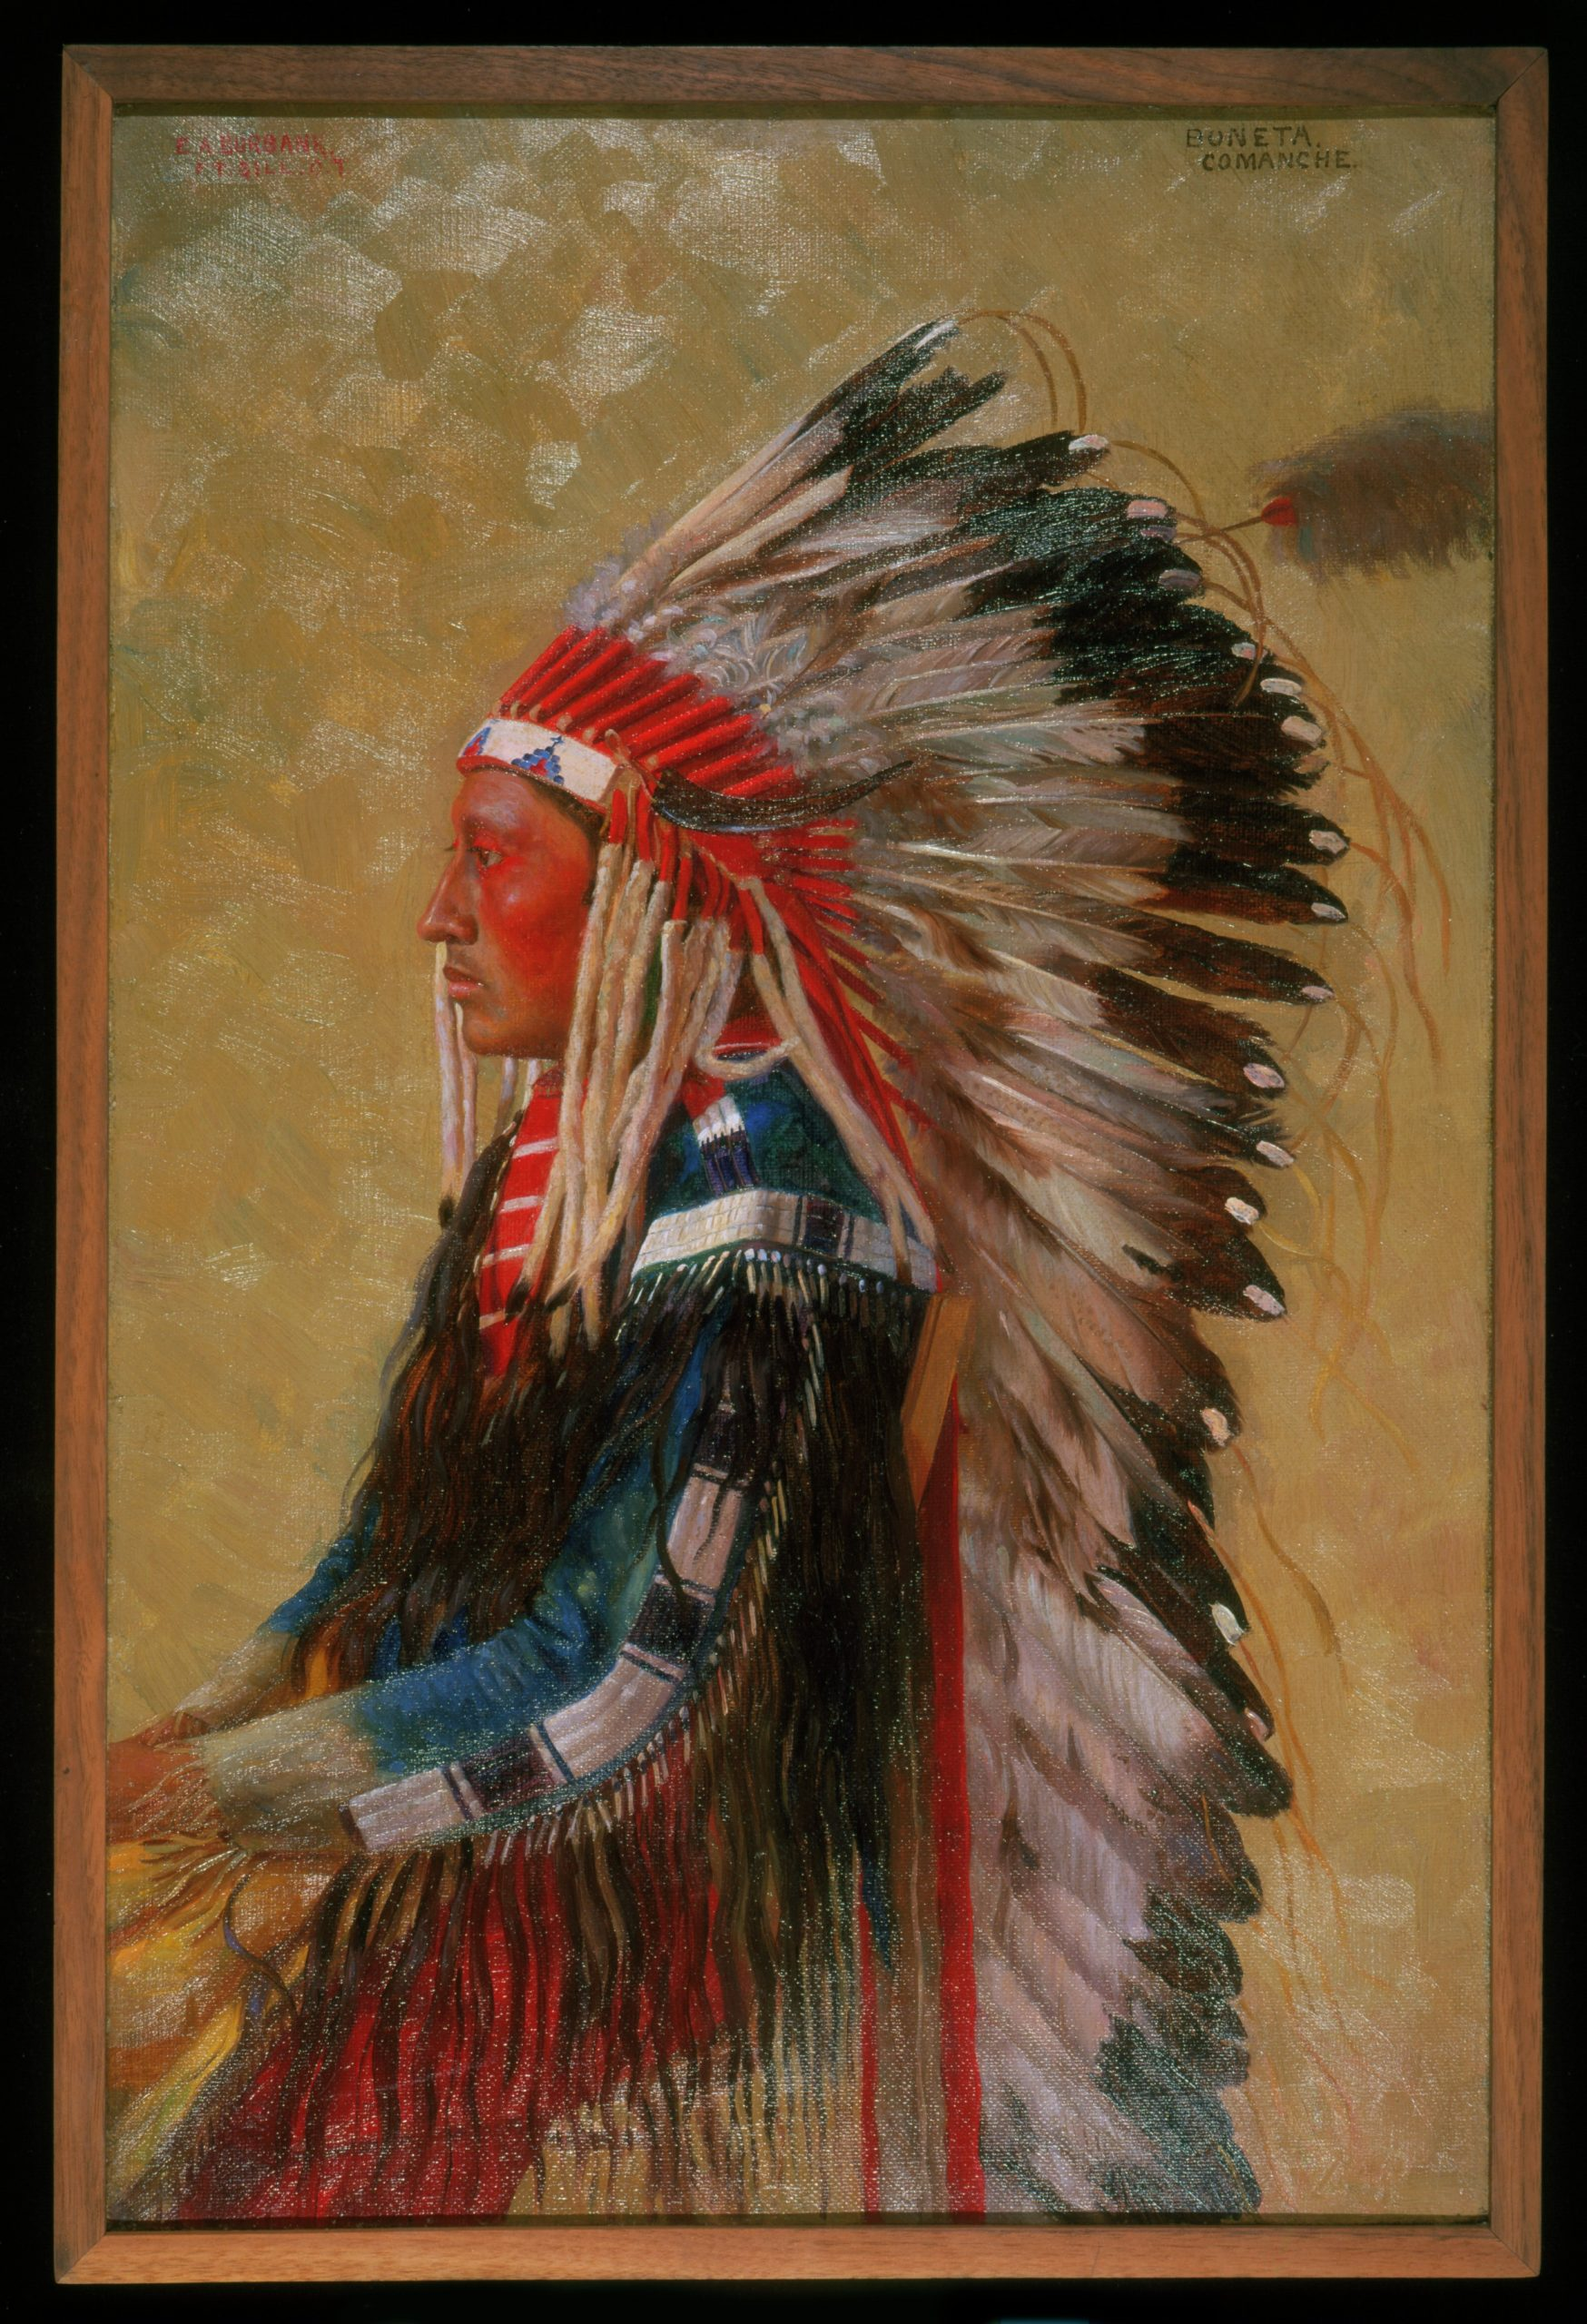 A portrait of a Native American man seated in profile.